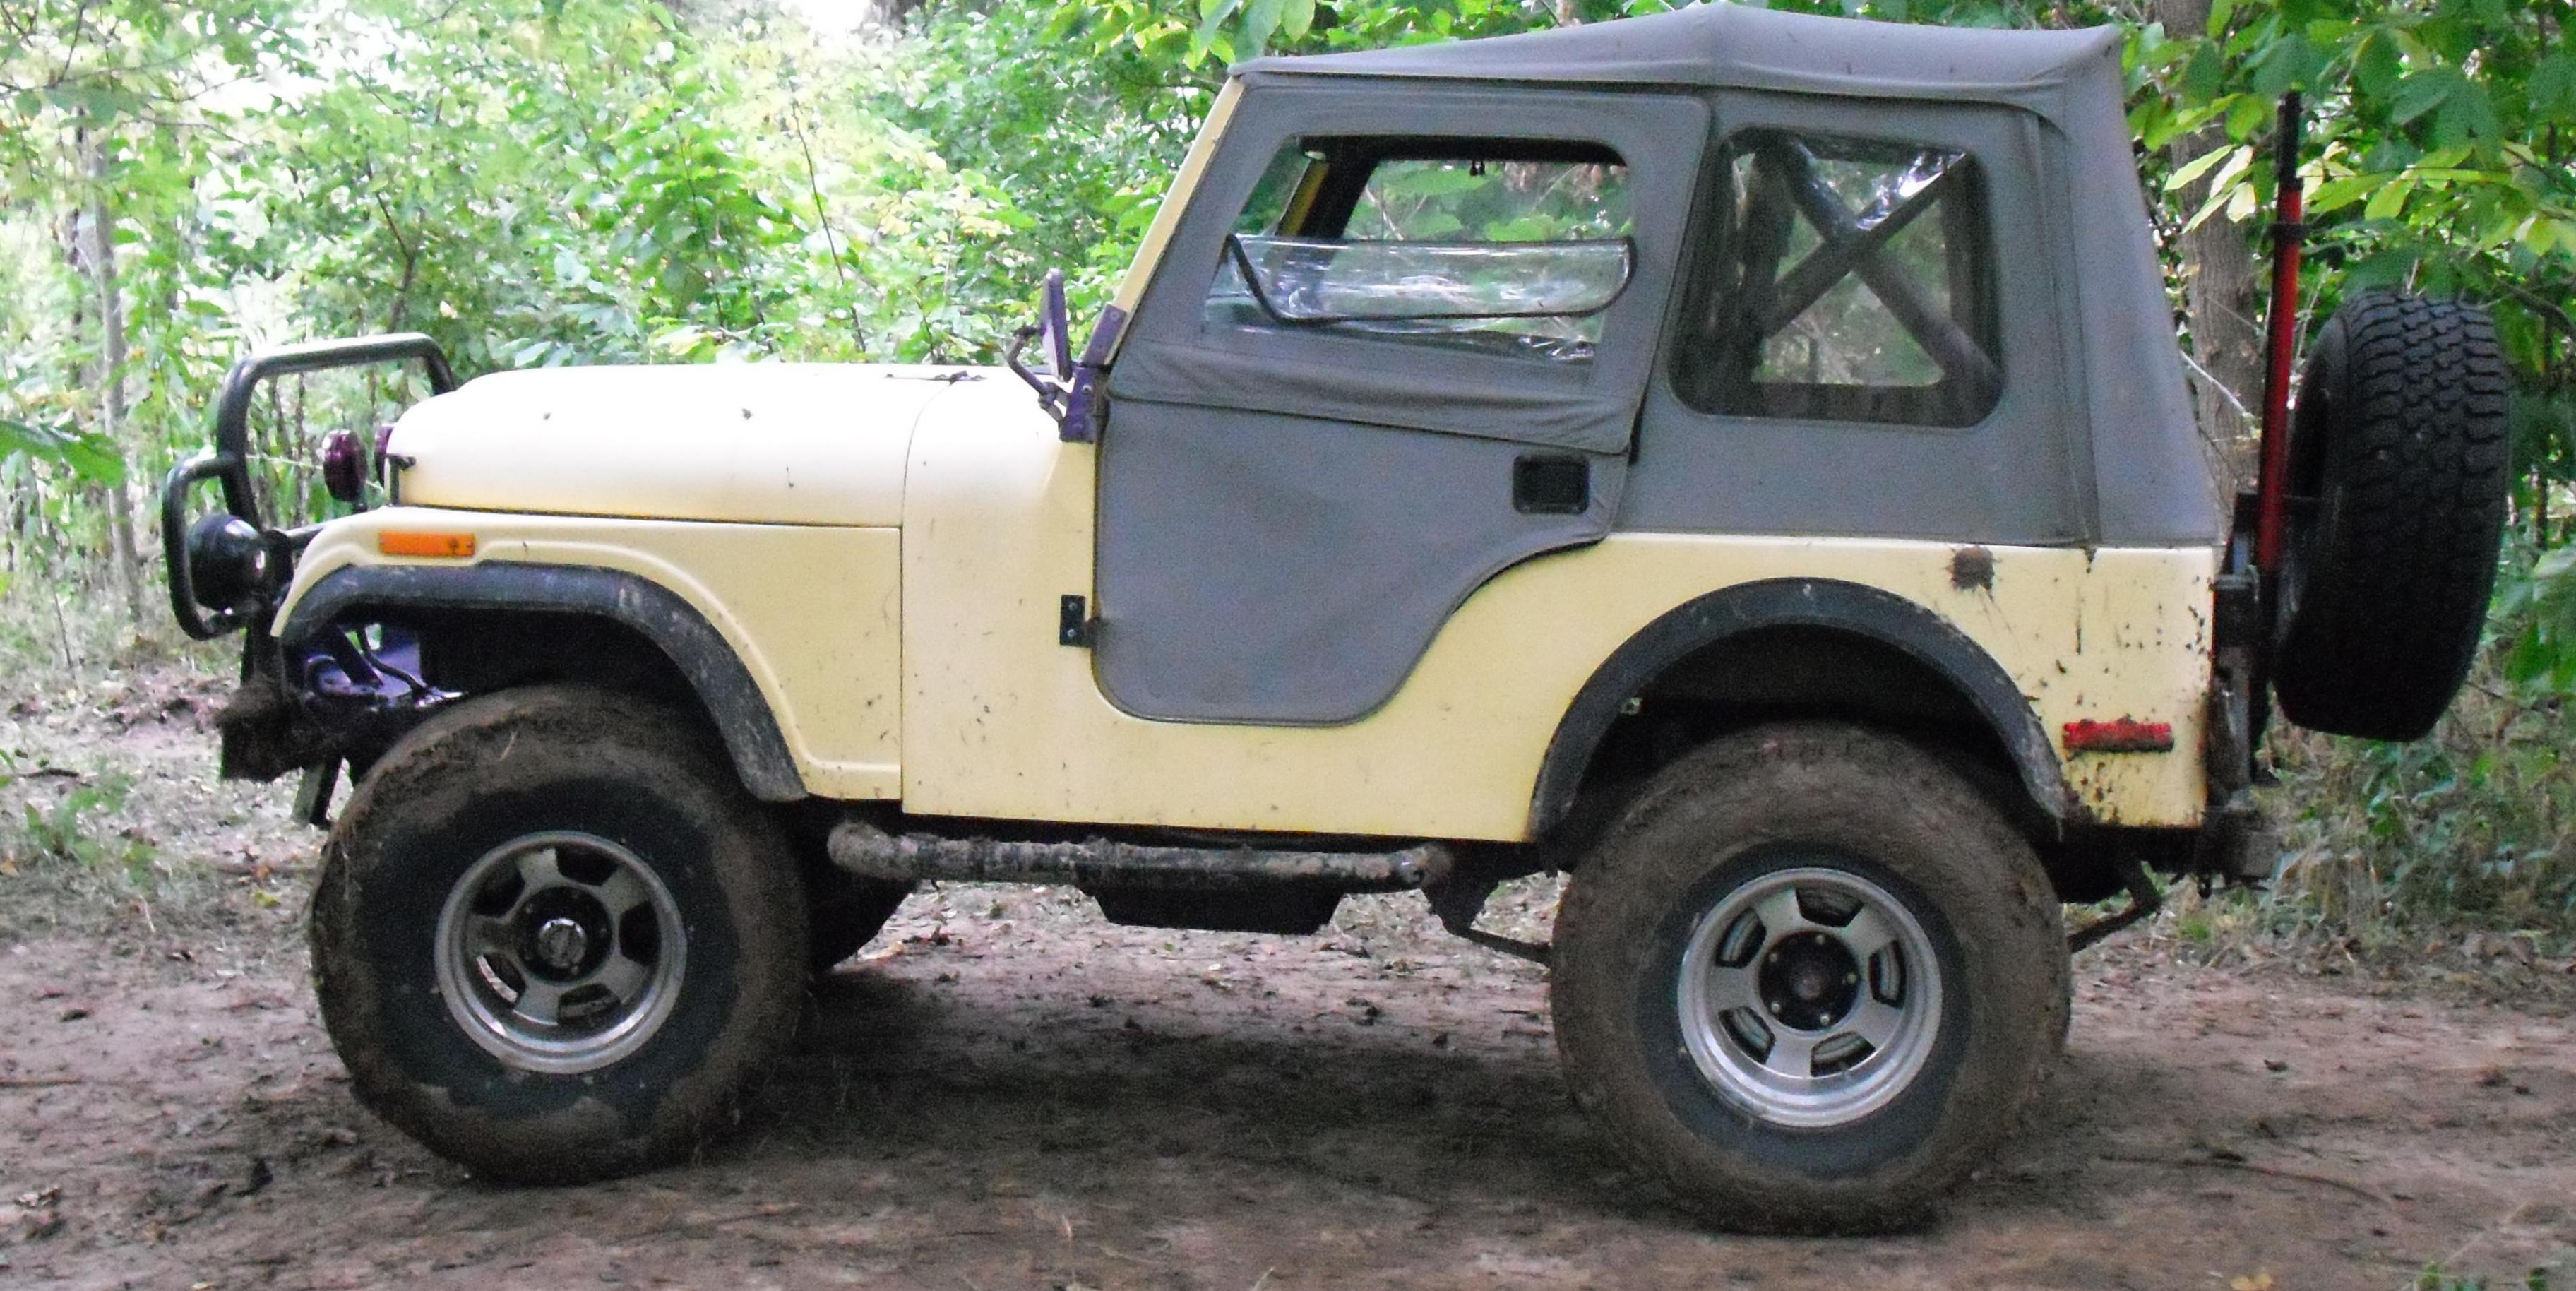 02z28ls1 1978 Jeep CJ5